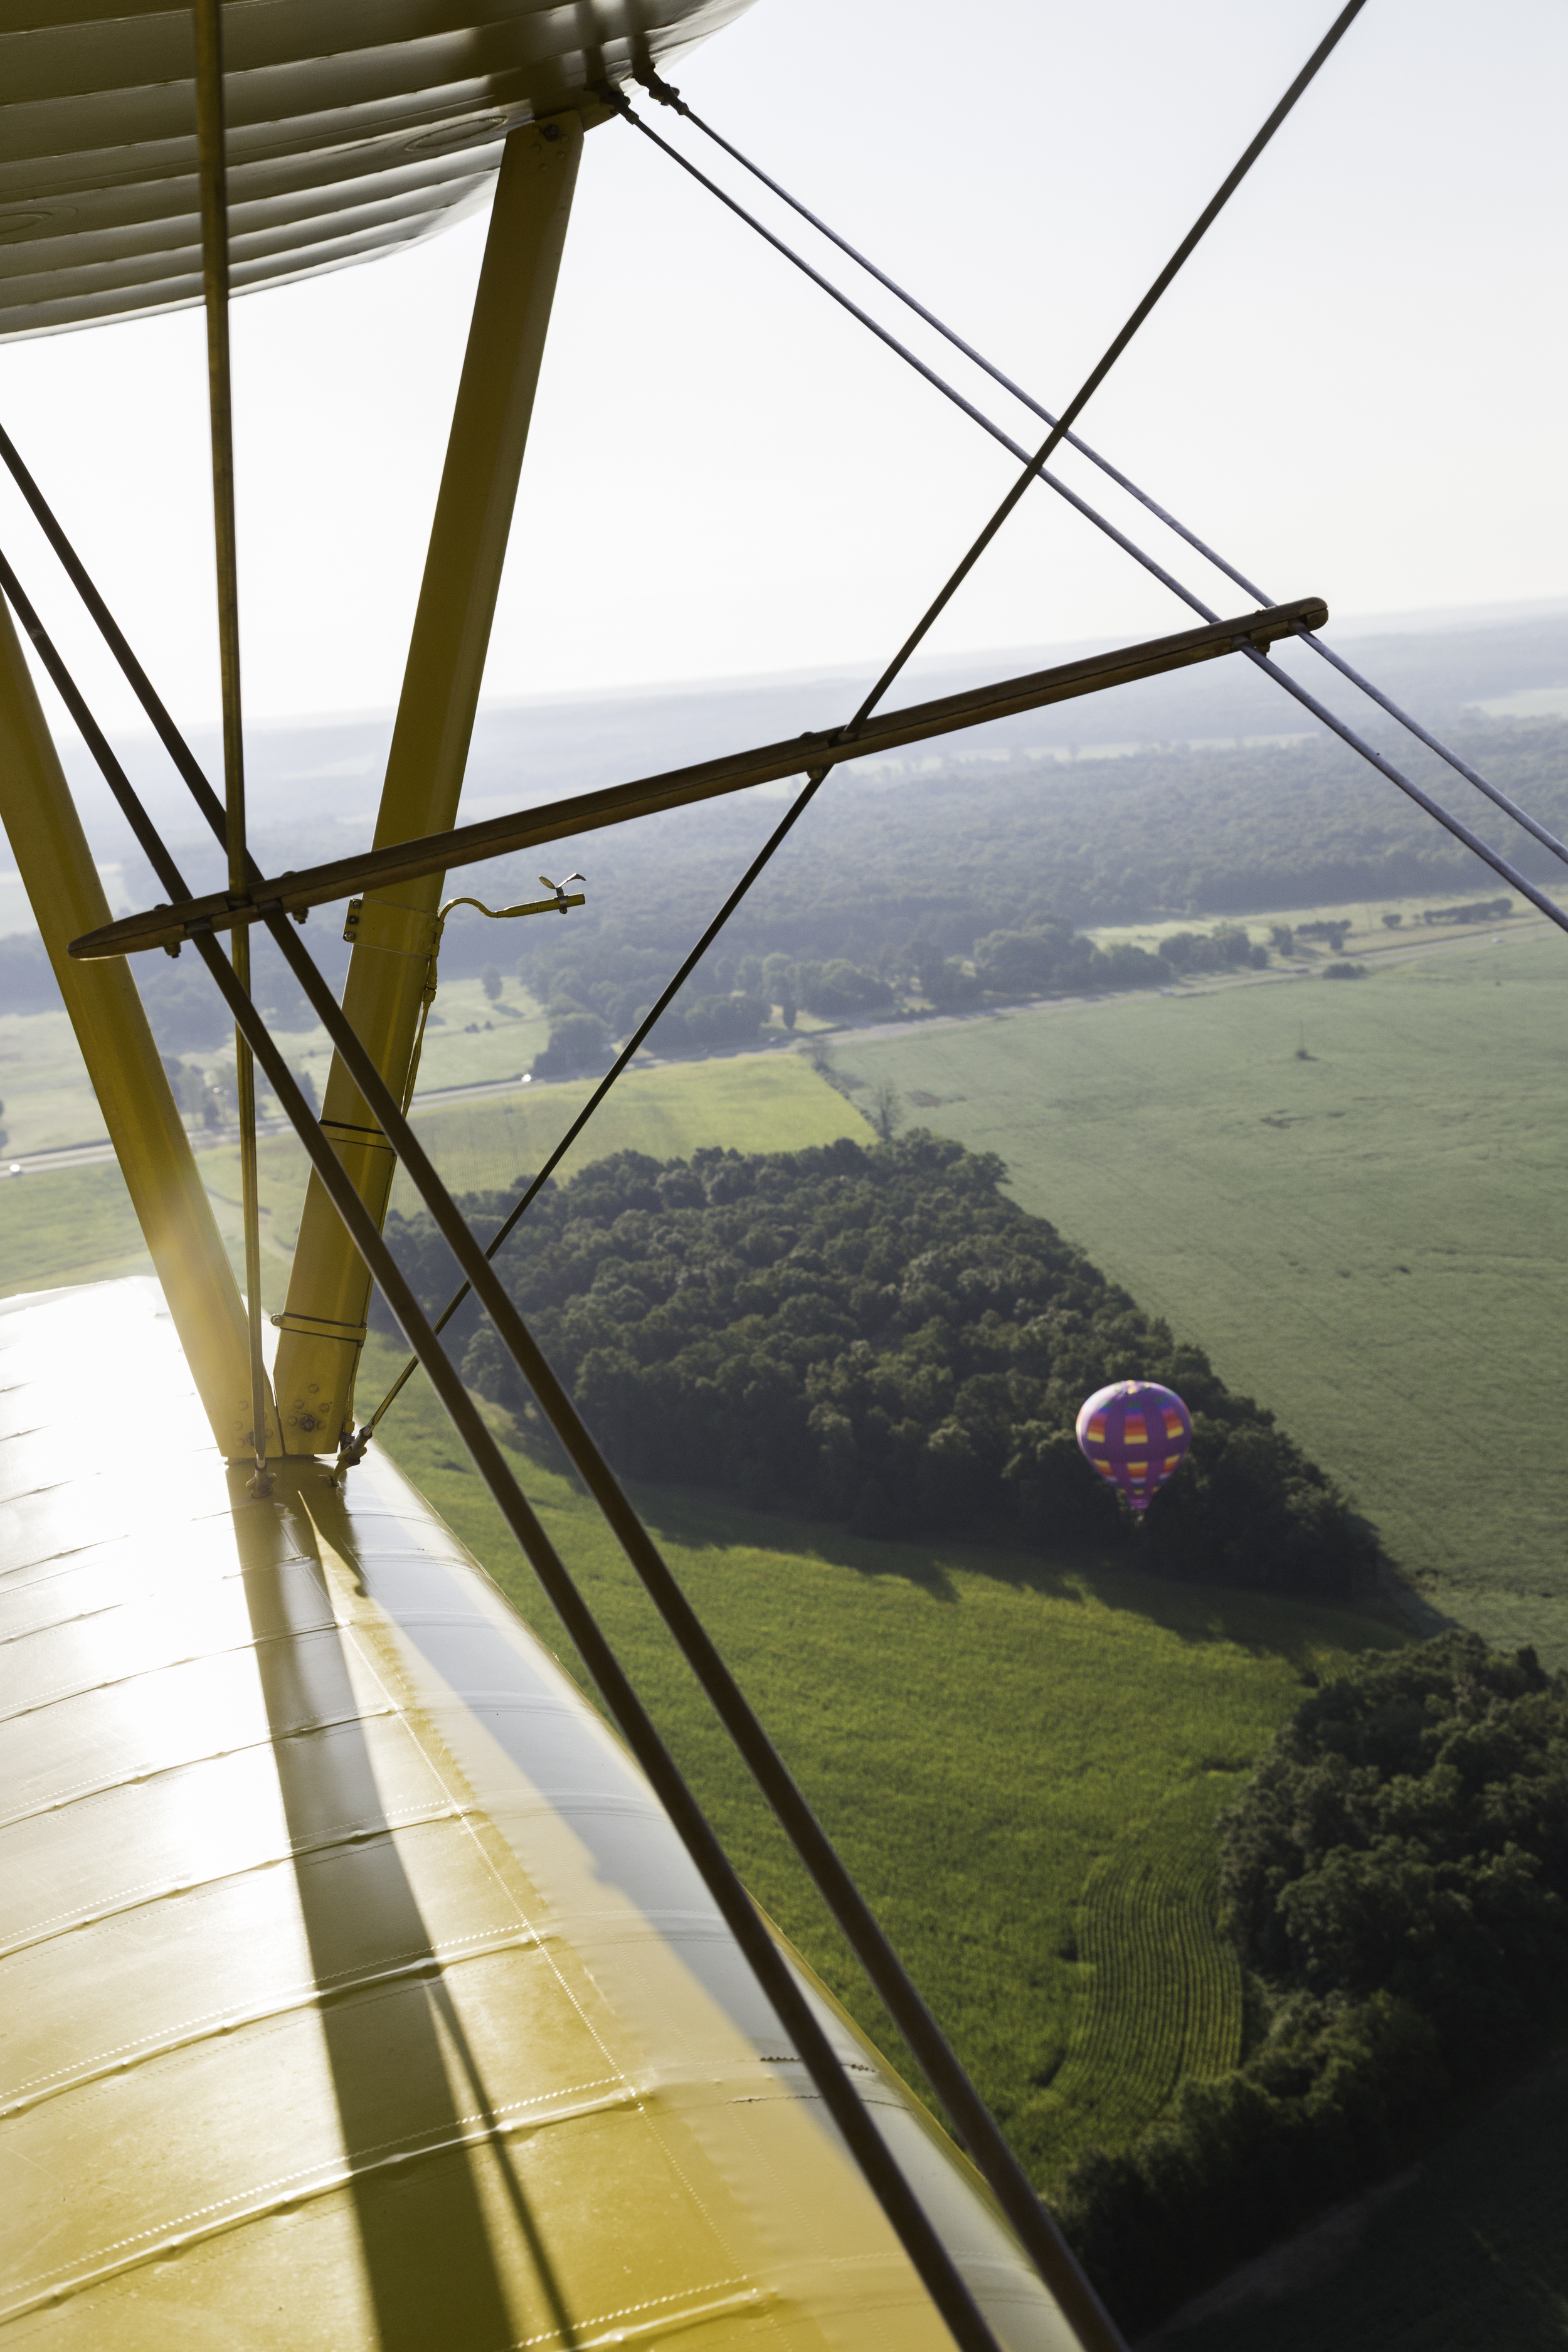 One of the Balloons Coming in to land in one of the fields surrounding the Flying Circus